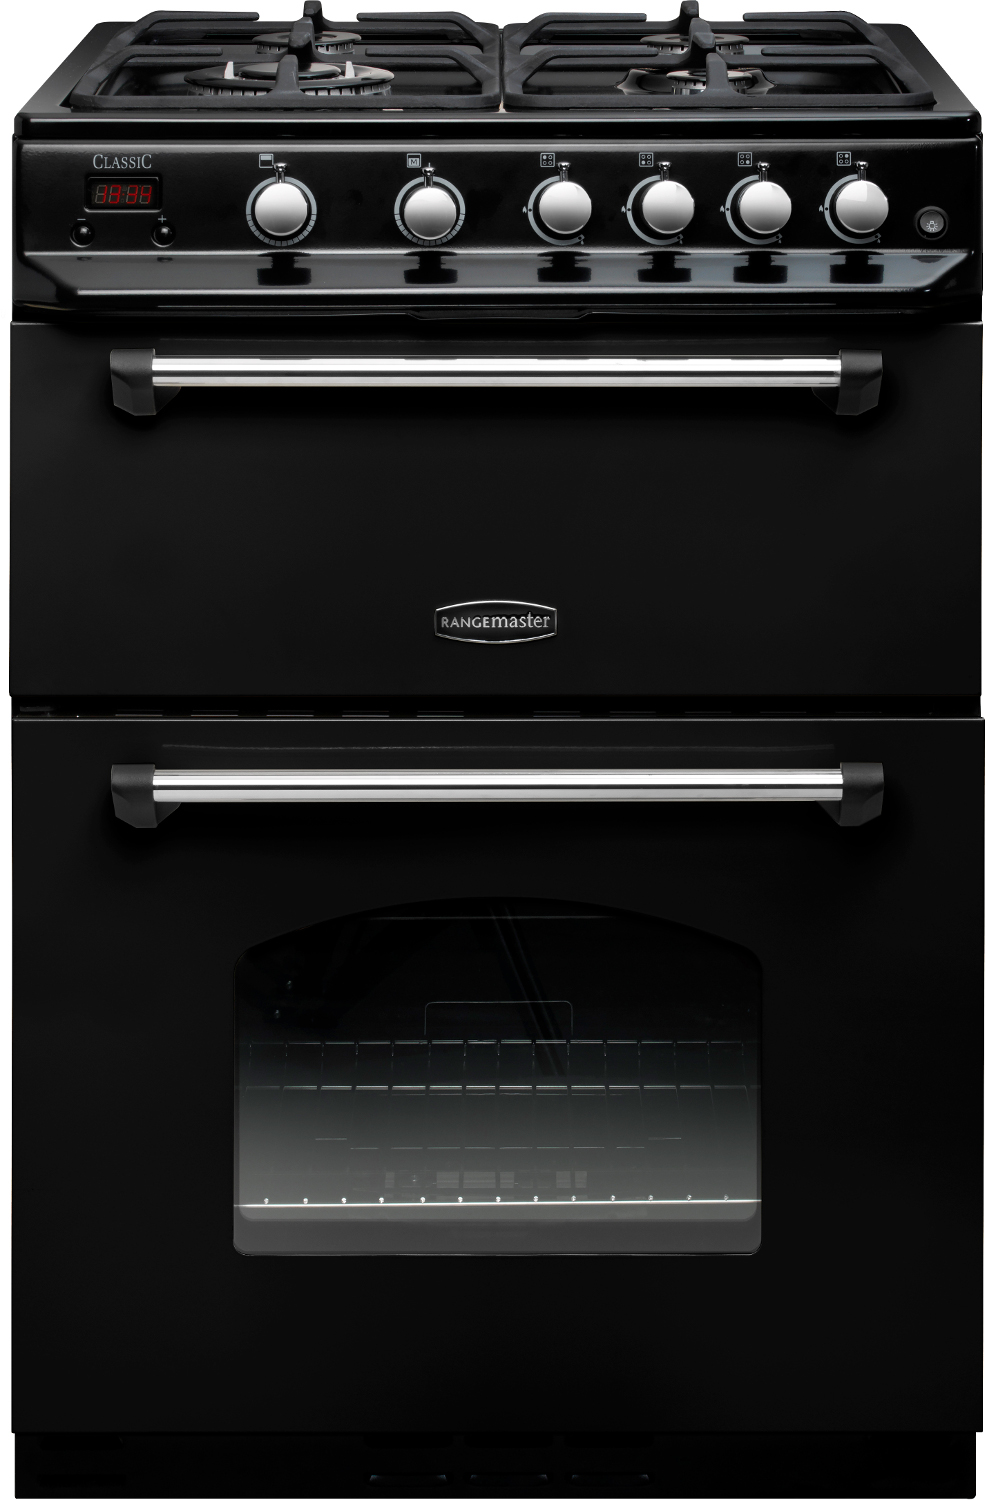 Rangemaster CLAS60NGFBL/C Classic 60 NG Black with Chrome Trim Gas Cooker with Double Oven